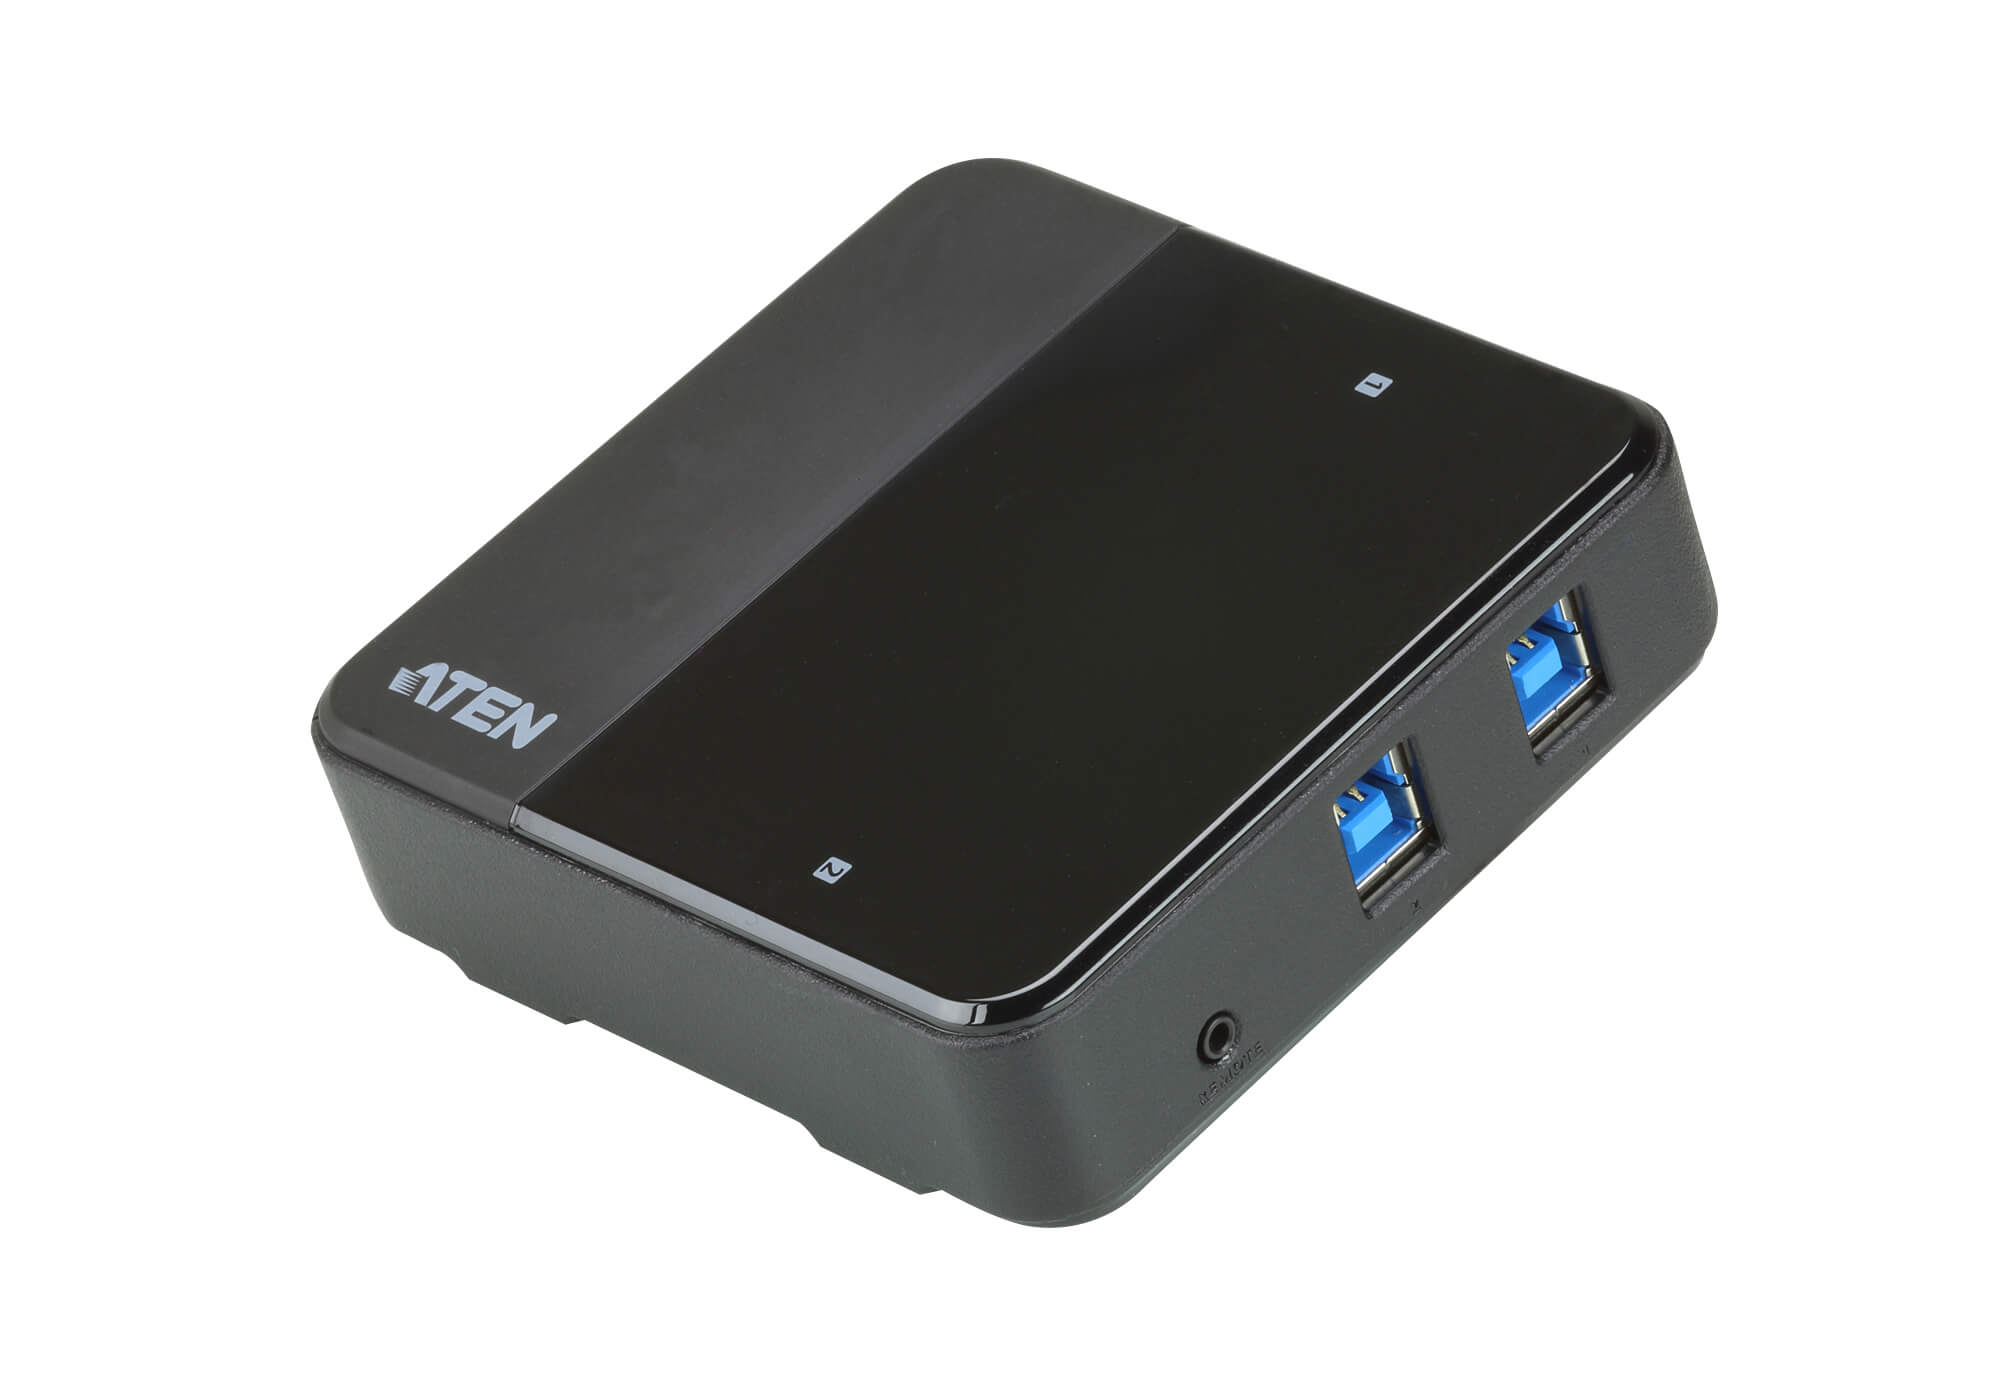 2 x 4 USB 3.2 Gen1 Peripherie-Freigabe-Switch-1